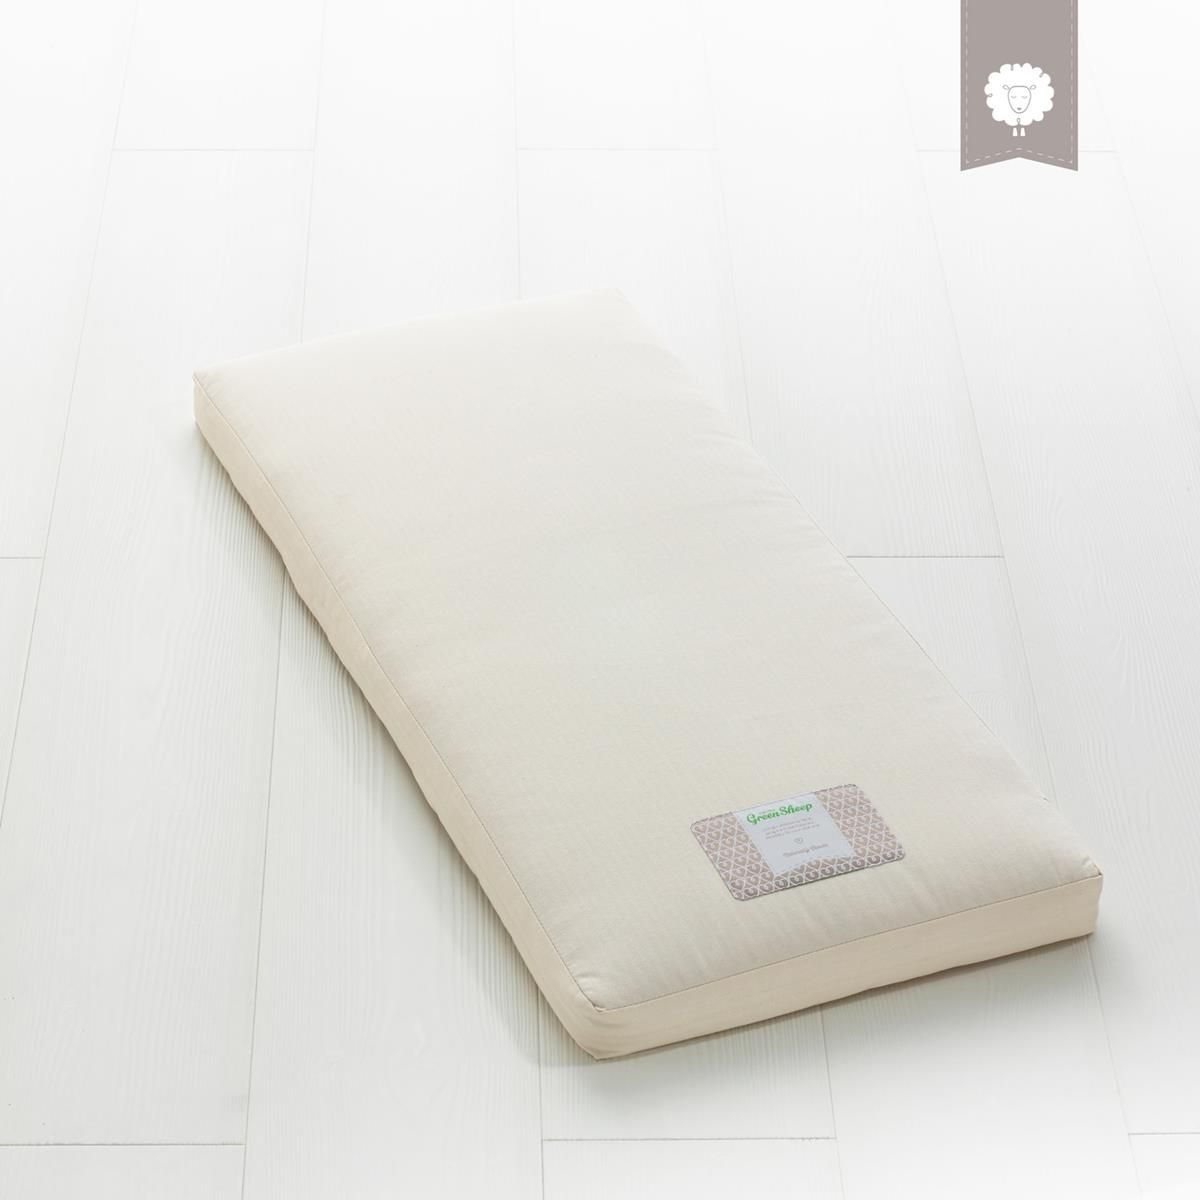 38 X 89cm Crib Mattress Natural Crib Mattress 38x89cm Pinterest Crib Mattress